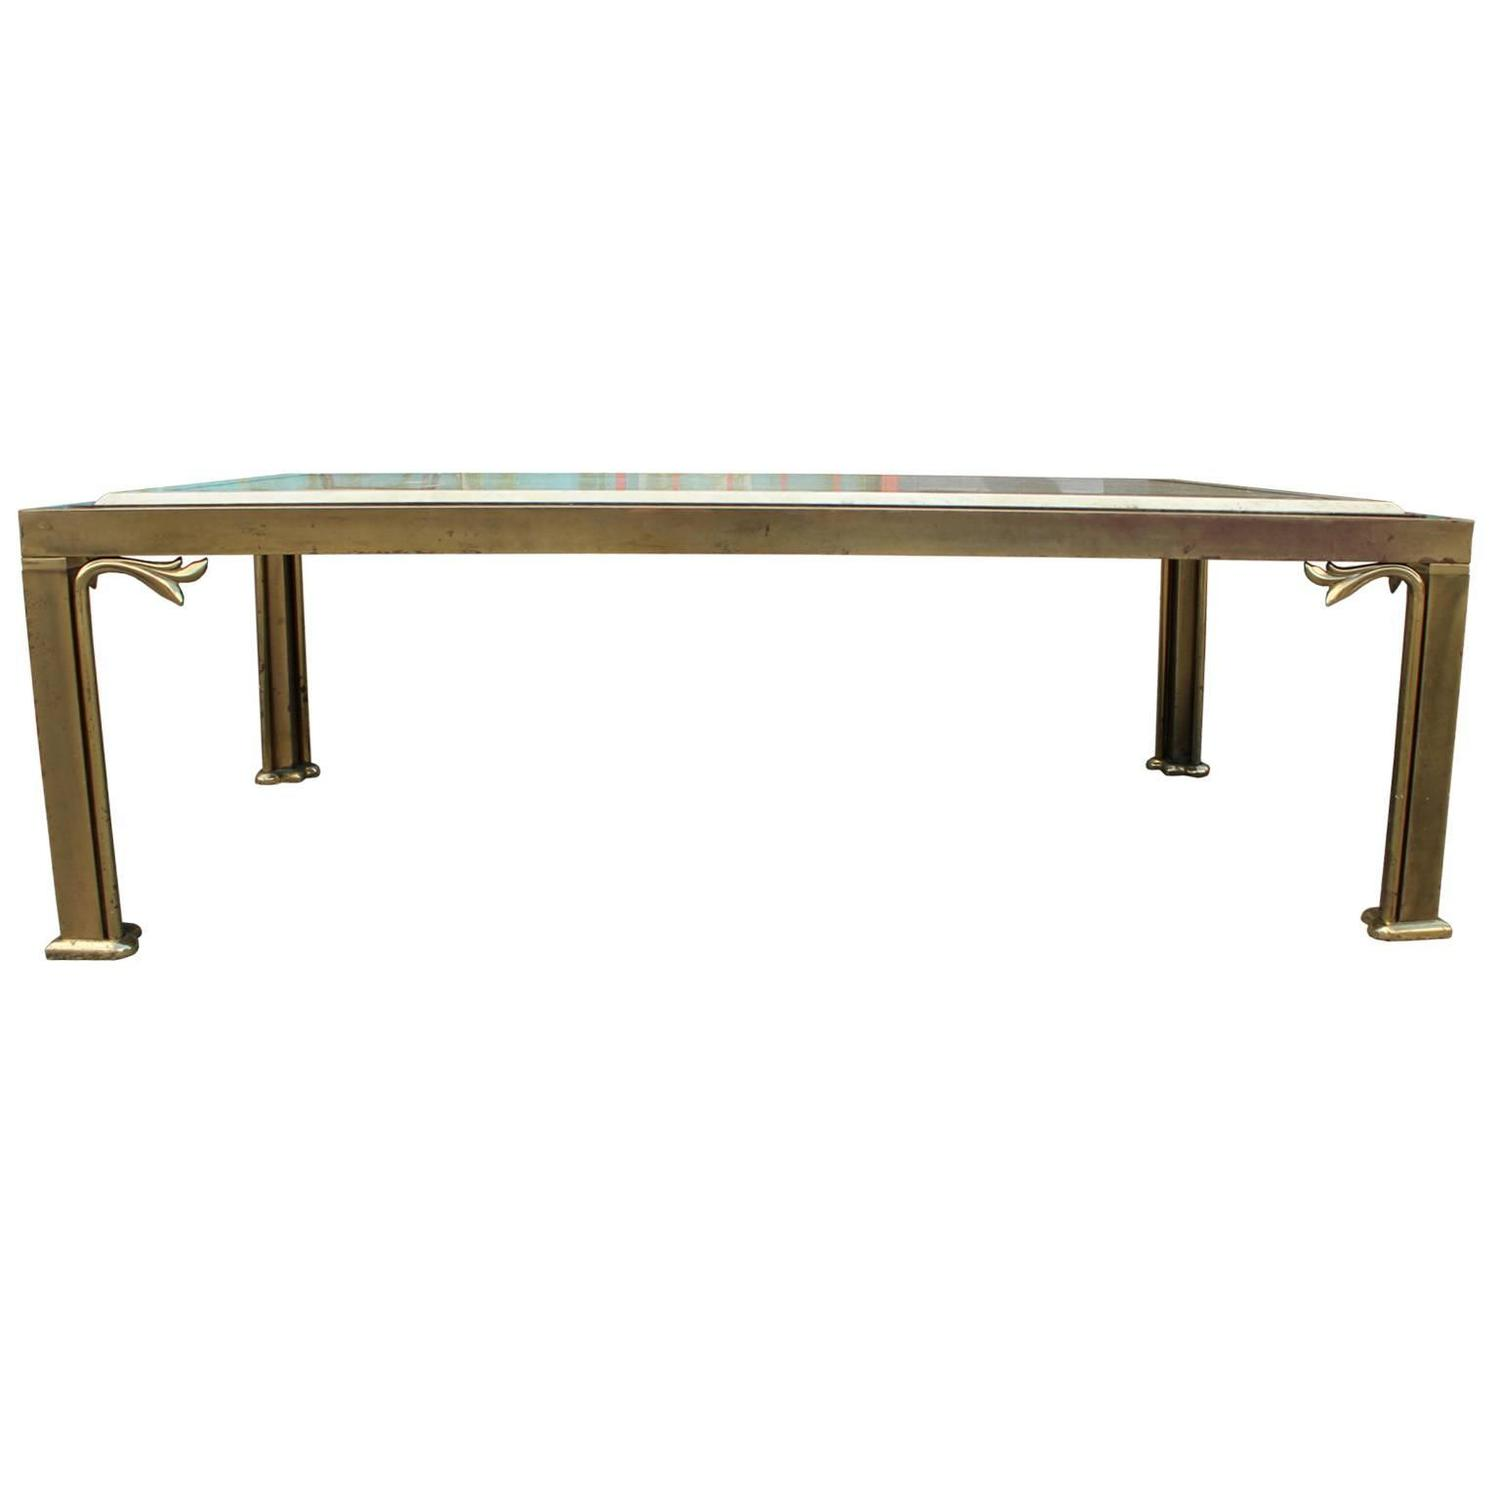 Marble Coffee Table Houston: Glamorous Travertine And Brass Coffee Table For Sale At